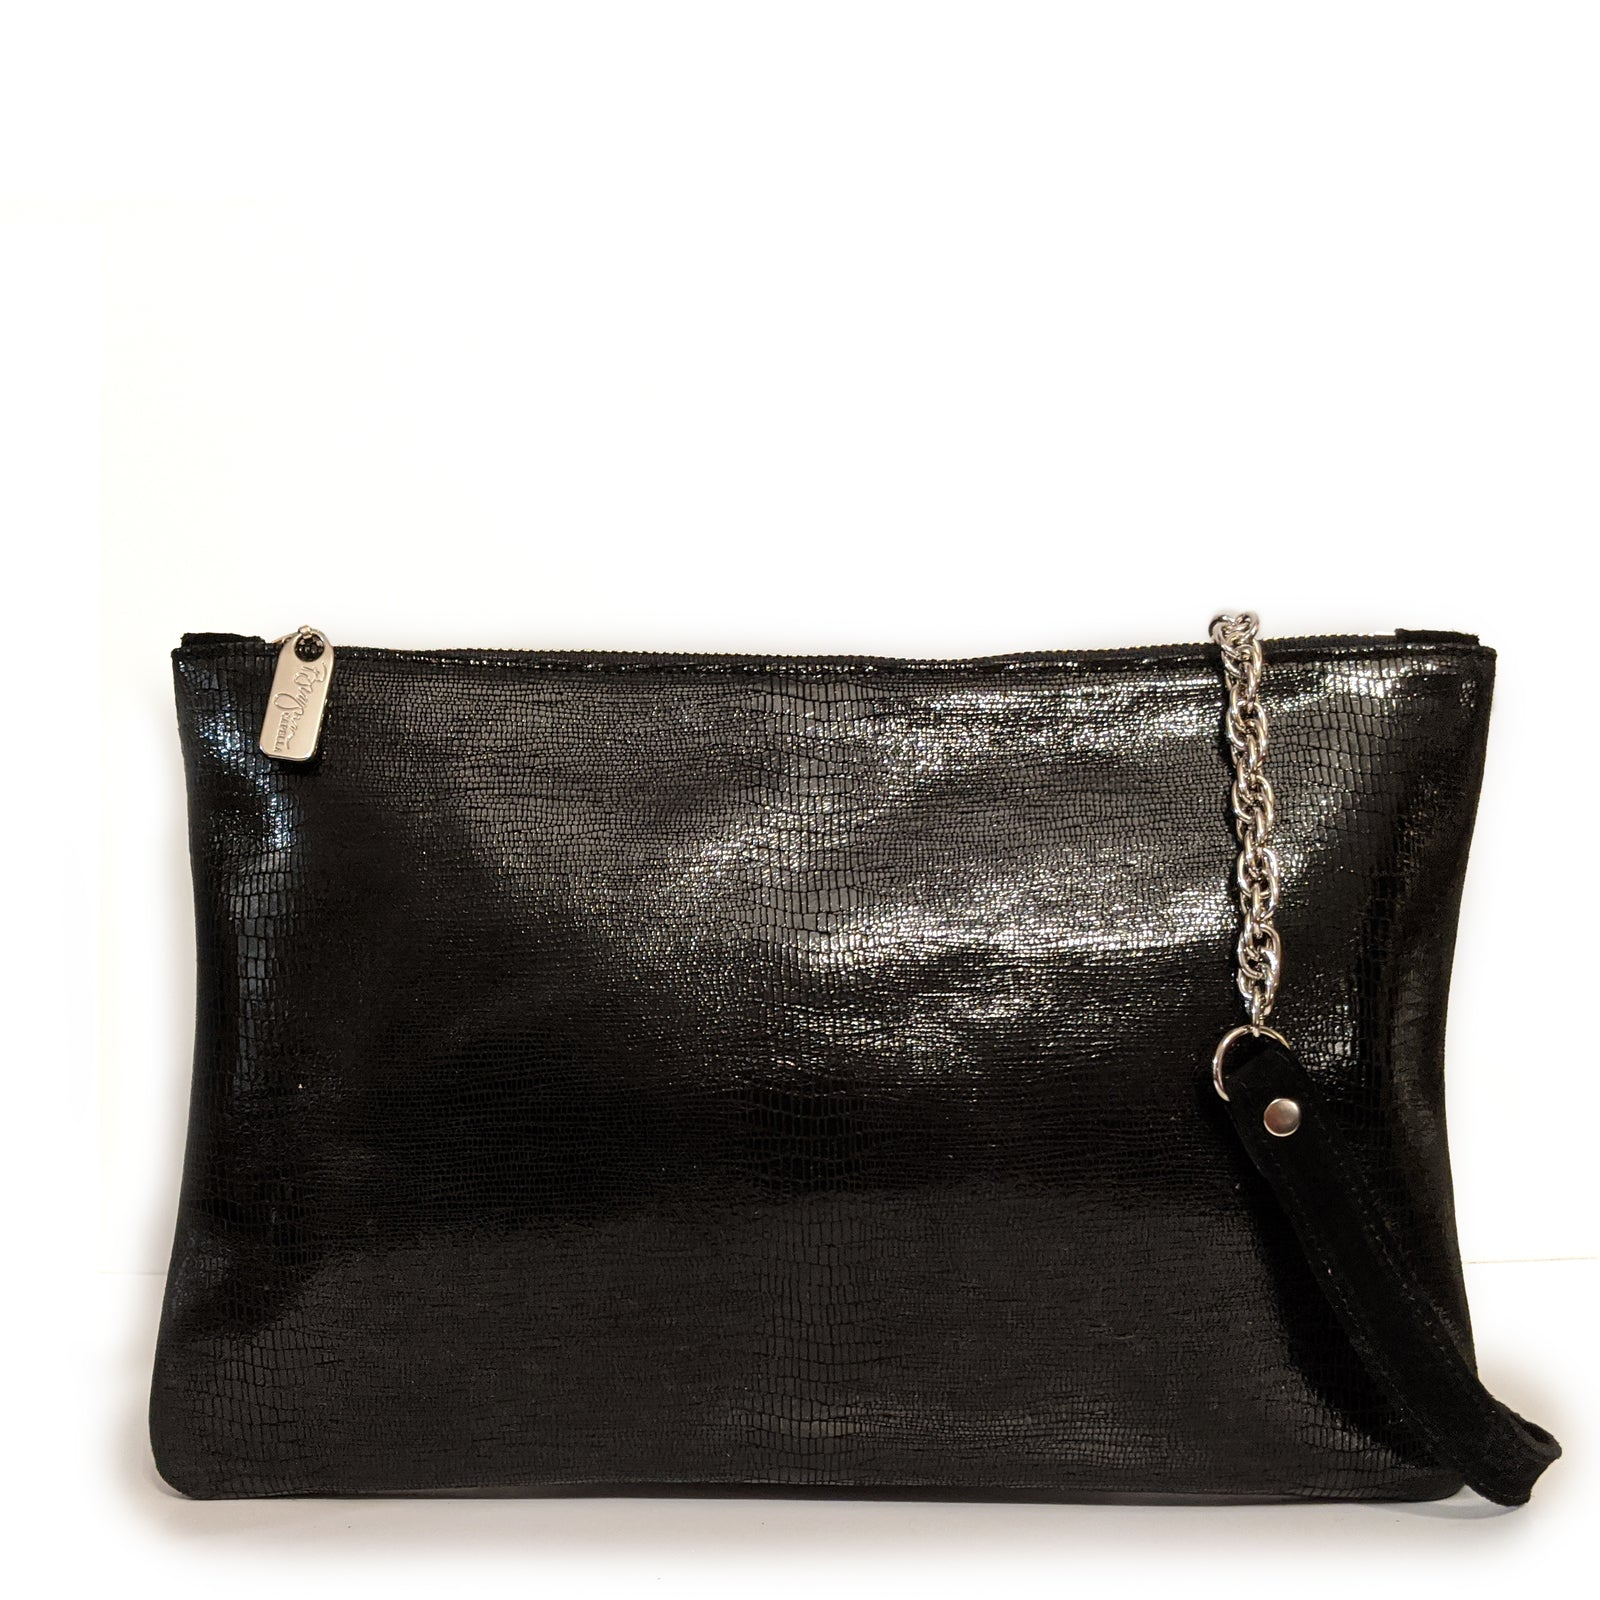 Nikki Clutch/Crossbody - Black Lizard